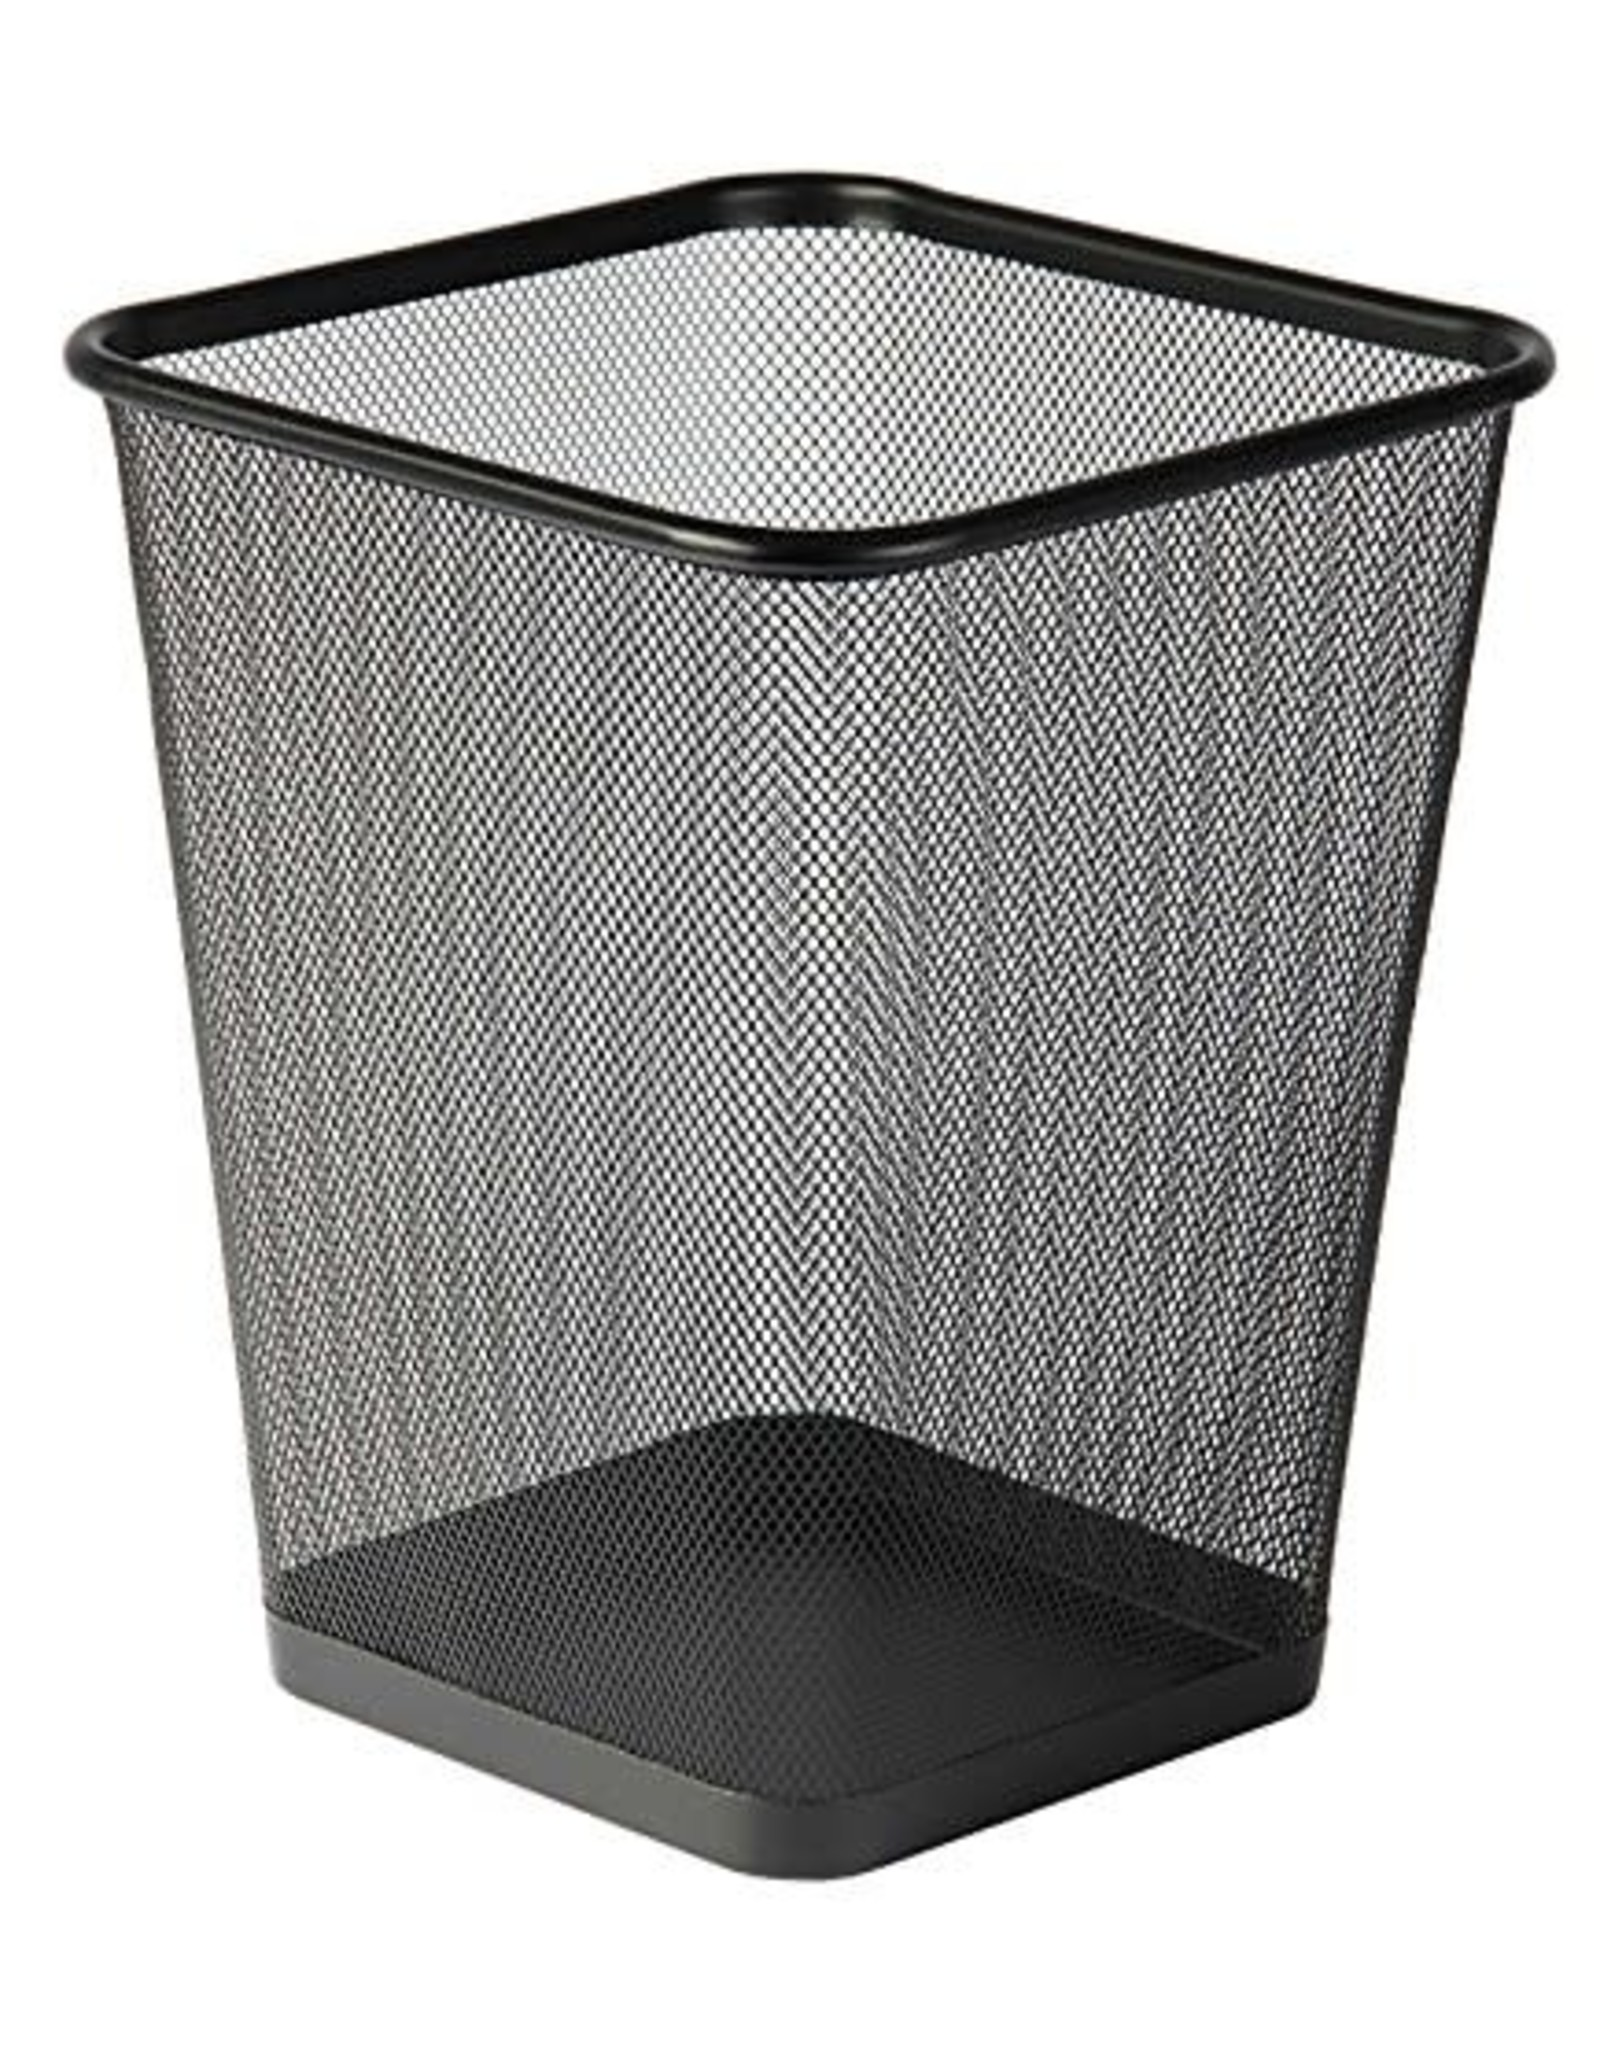 Black Mesh Square Waste Bin